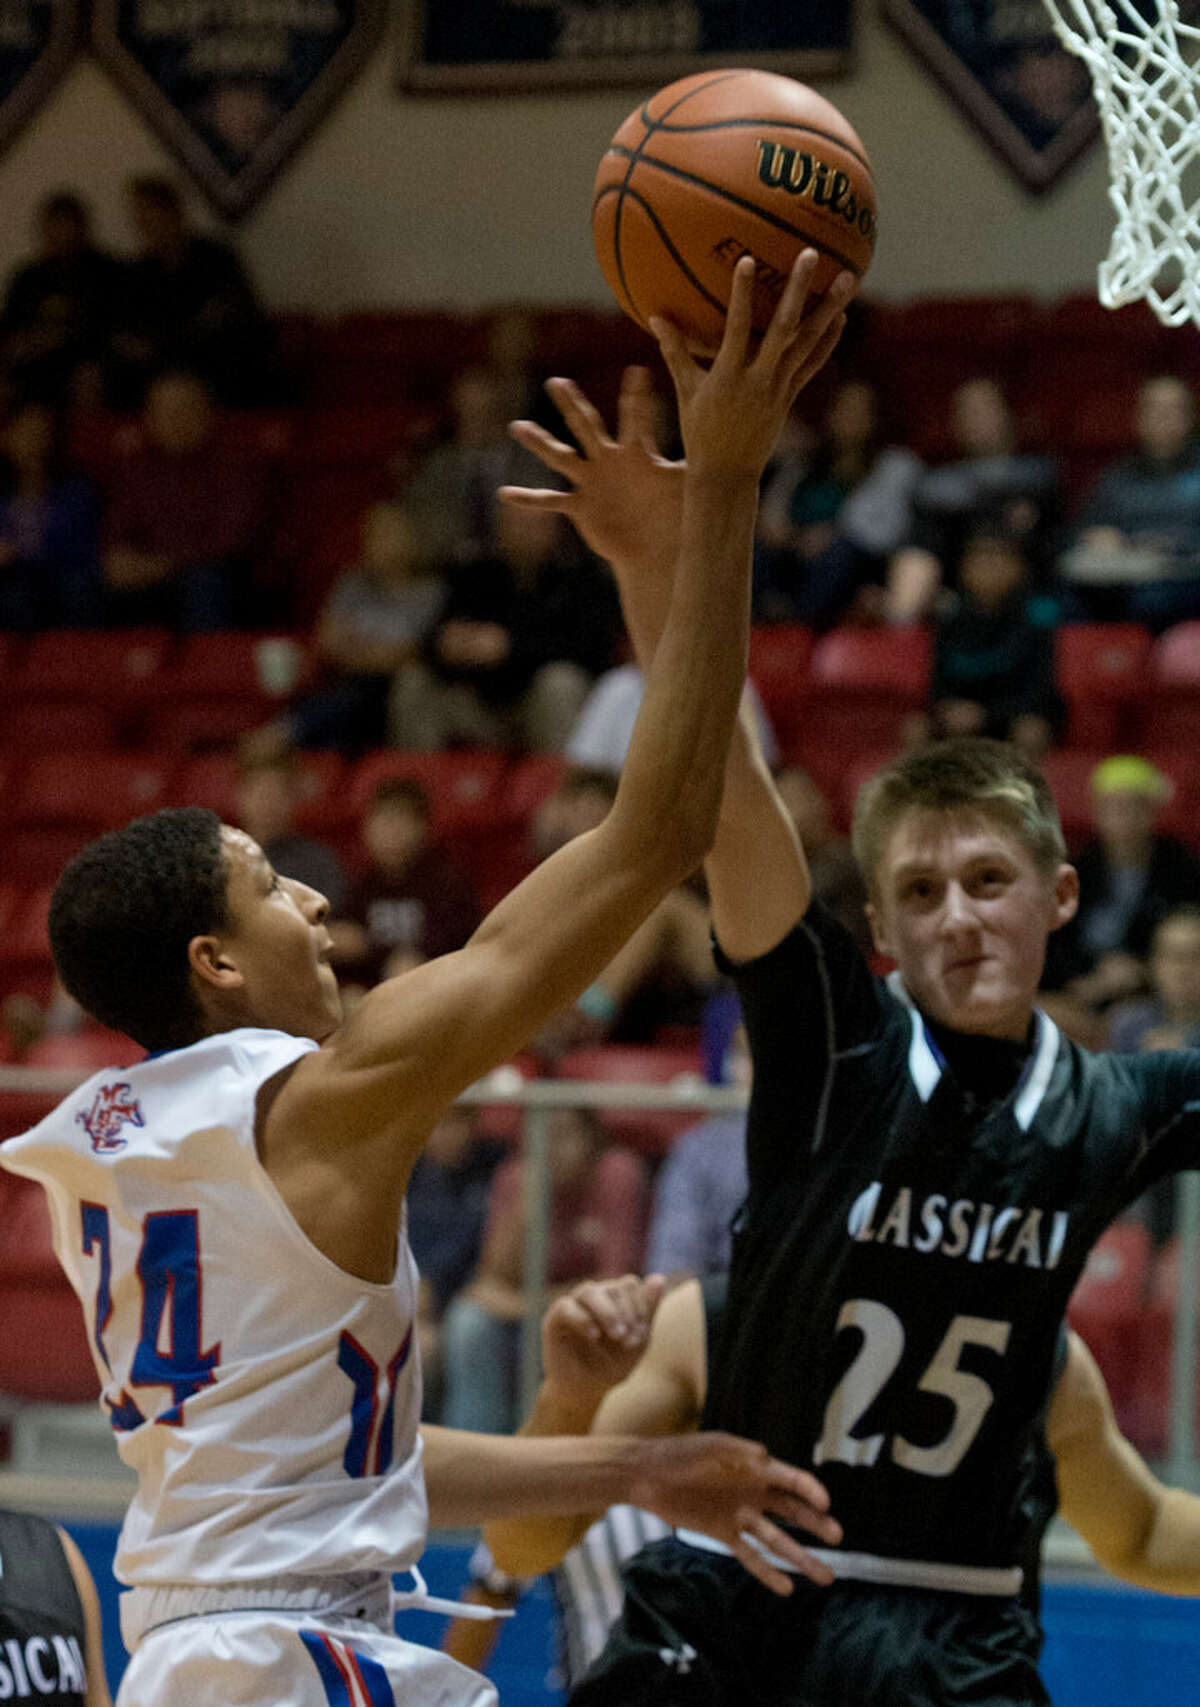 Midland Christian's Joseph Venzant drives to the basket as Midland Classical's Drew Littleton defends 11/07/17 at the McGraw Event Center. Tim Fischer/Reporter-Telegram